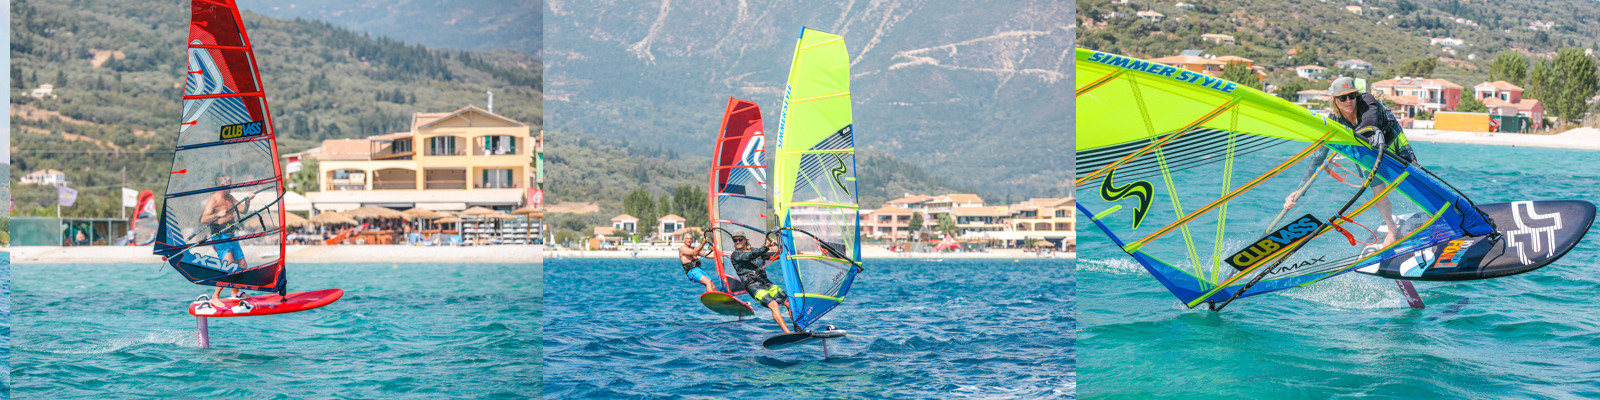 windfoiling at club vass